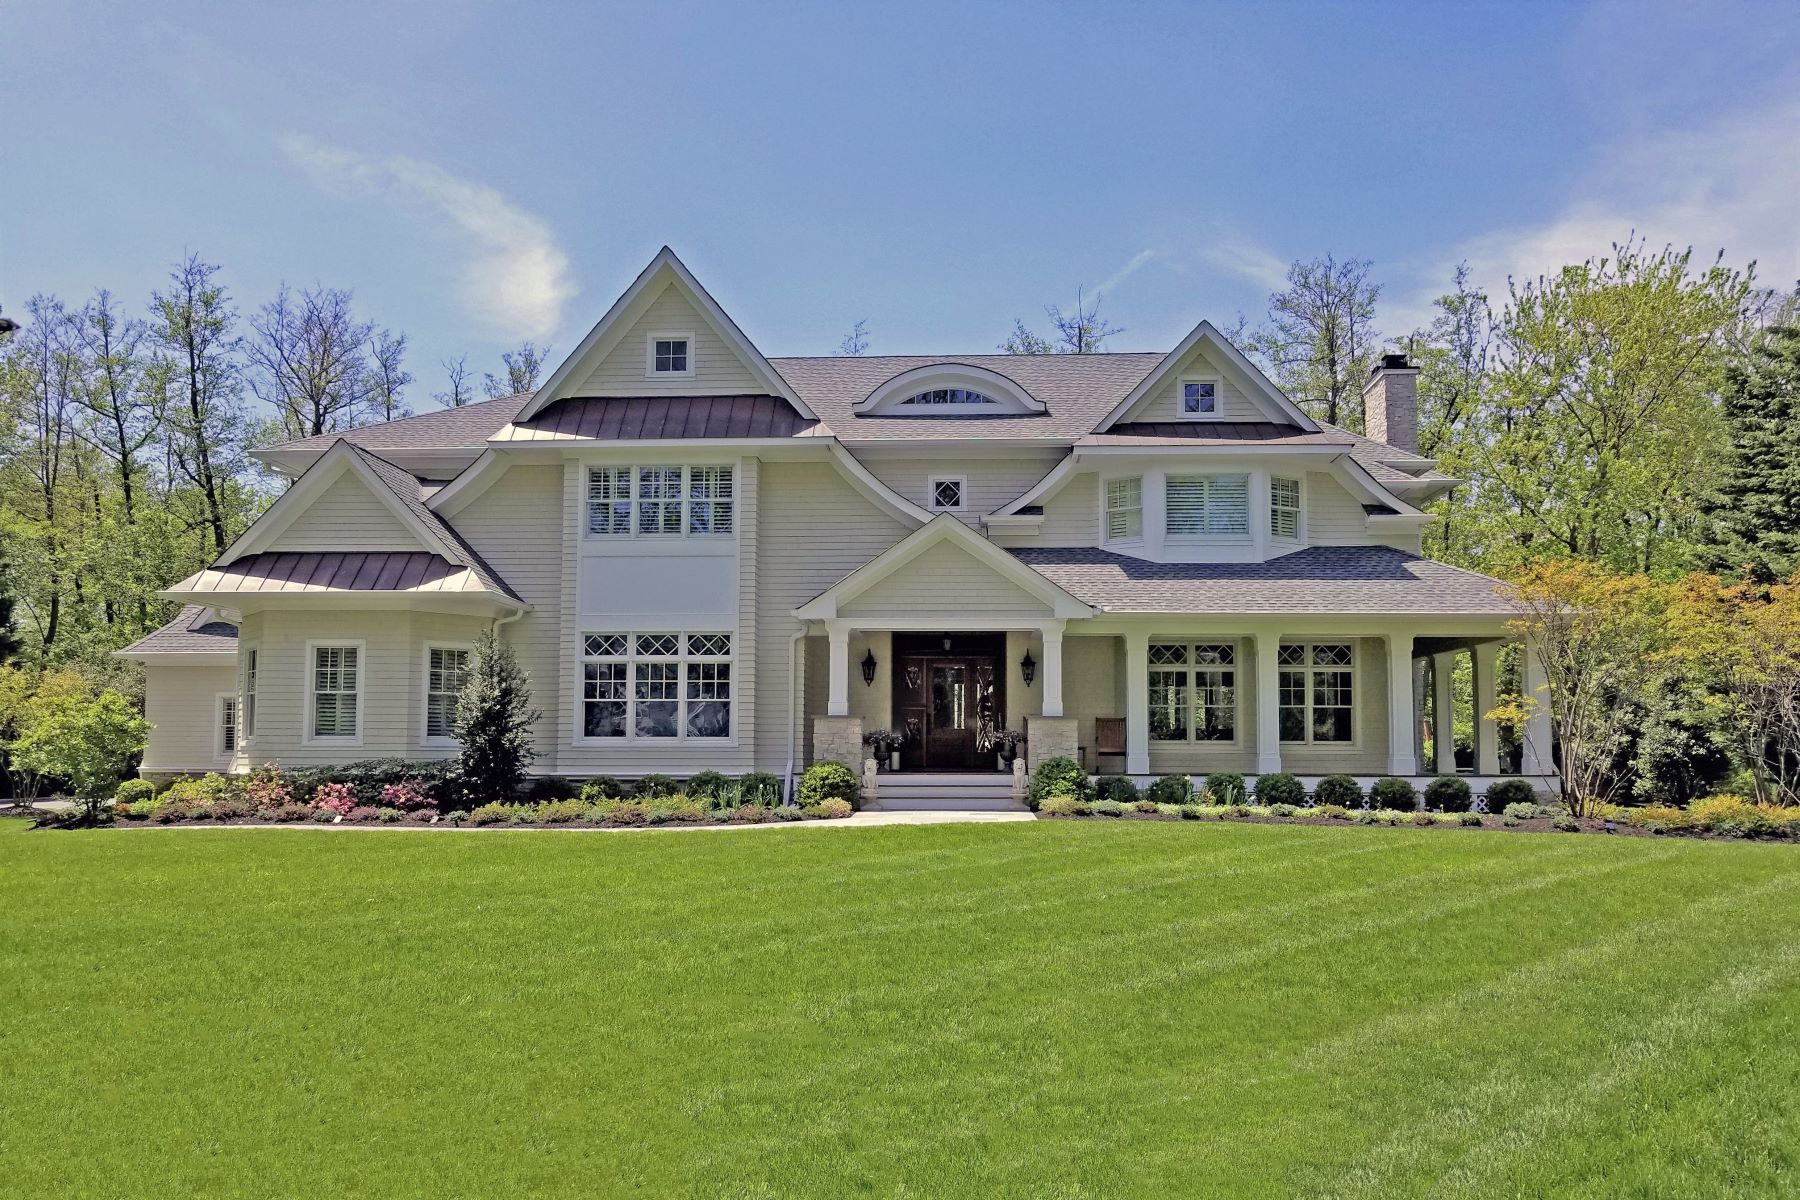 Single Family Home for Sale at ABOVE AND BEYOND 8 Heathcliff Road, Rumson, New Jersey 07760 United States